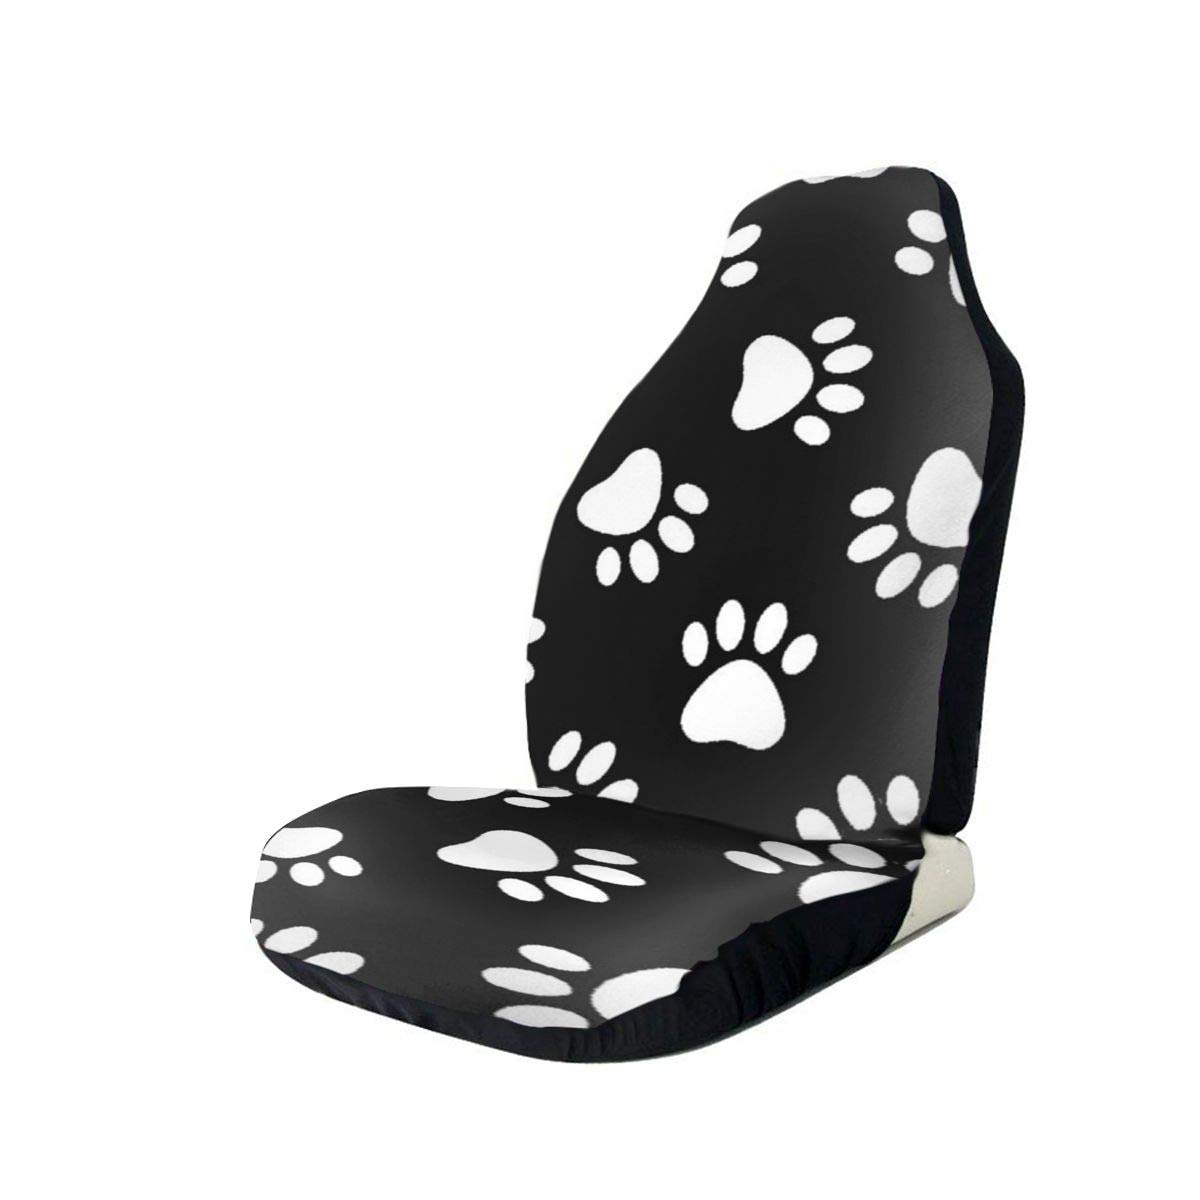 Car Seat Cover, Universal Car Seat Covers, Cat Dog Paw Print Seat Covers Universal for Front Seat, Automobile Seats Protector Fits Most Car Trucks SUV